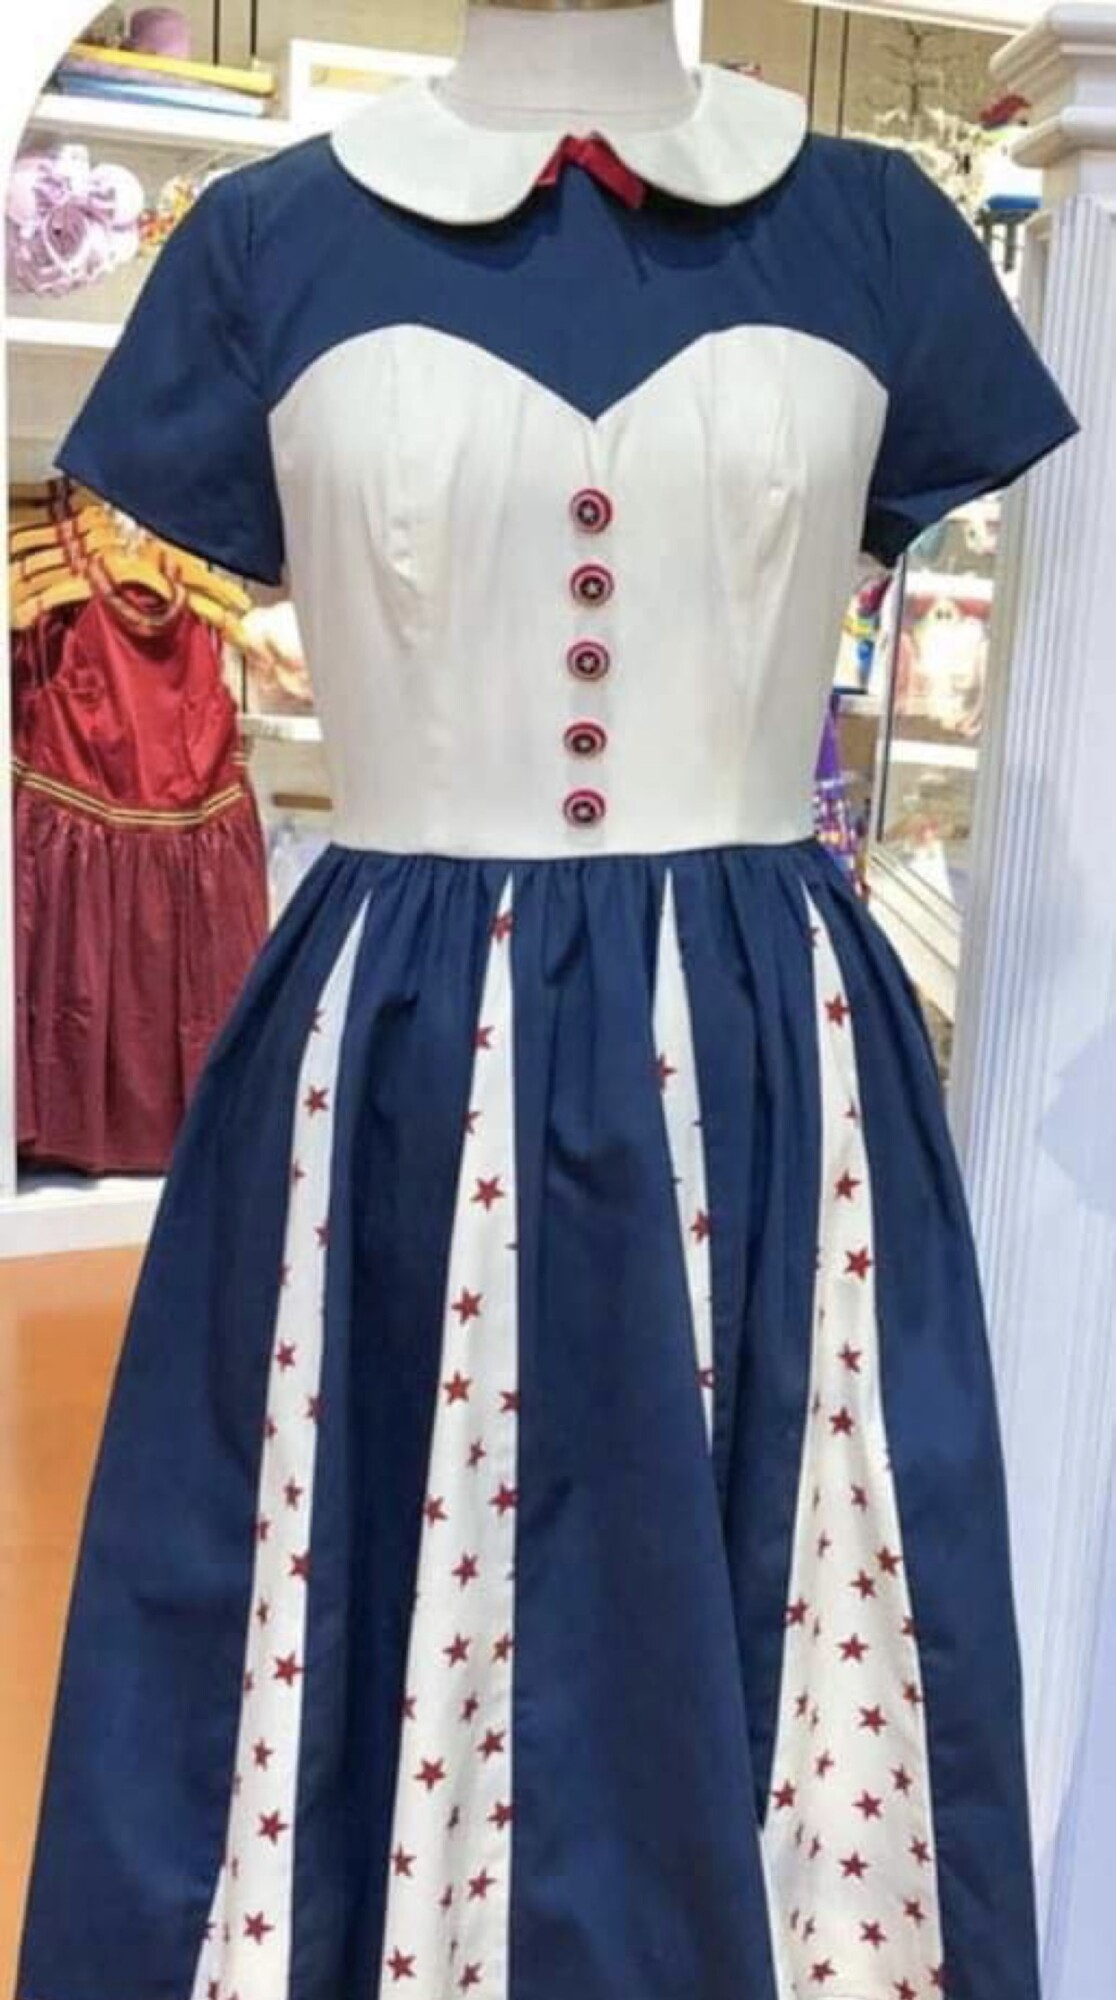 New Captain America Dress & Handbag at WDW 1